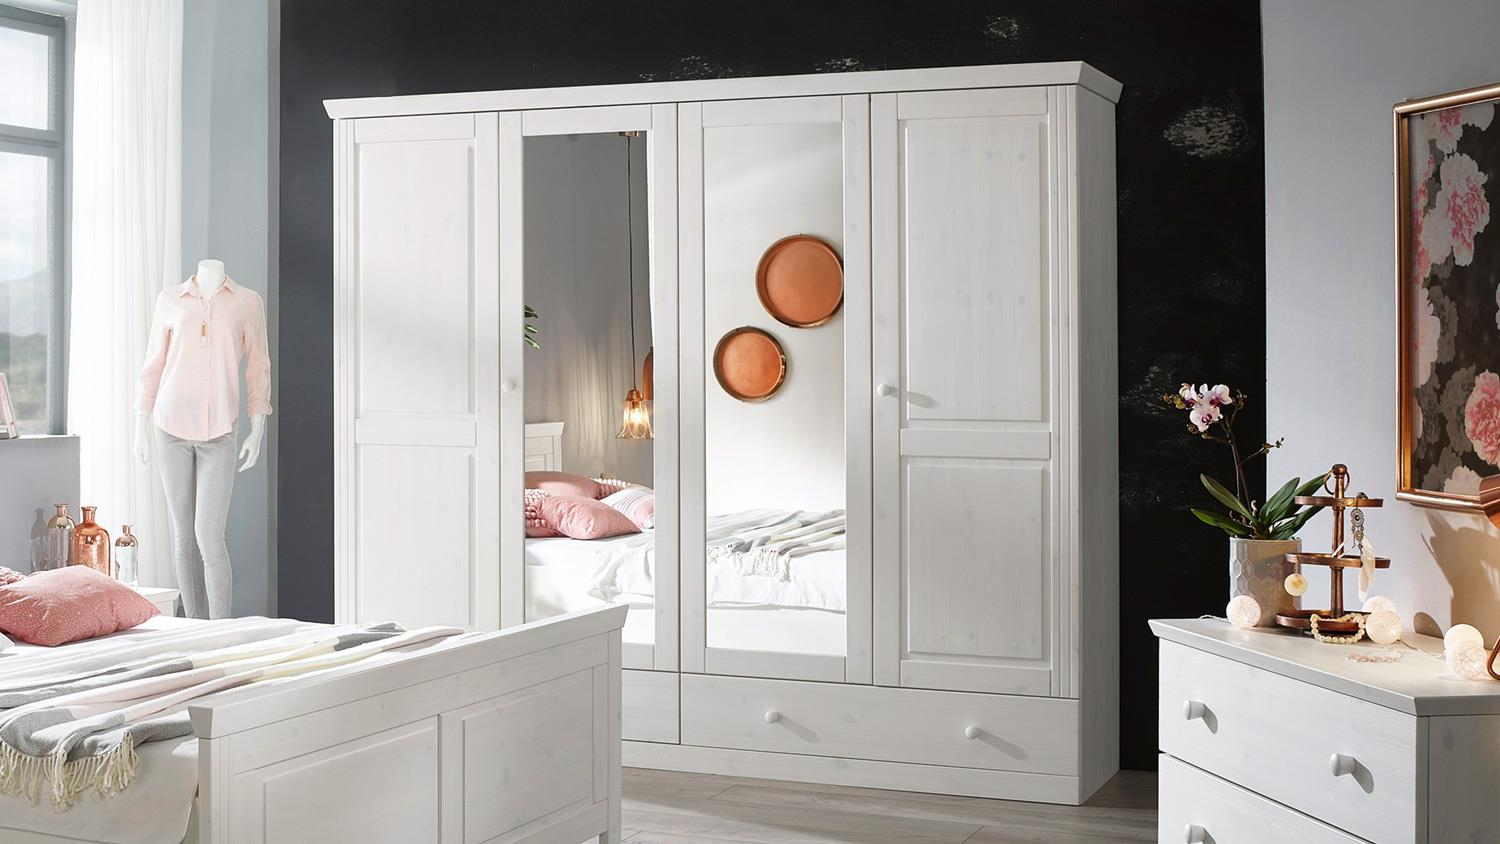 kleiderschrank genia schrank kiefer massiv wei gewachst landhausstil. Black Bedroom Furniture Sets. Home Design Ideas